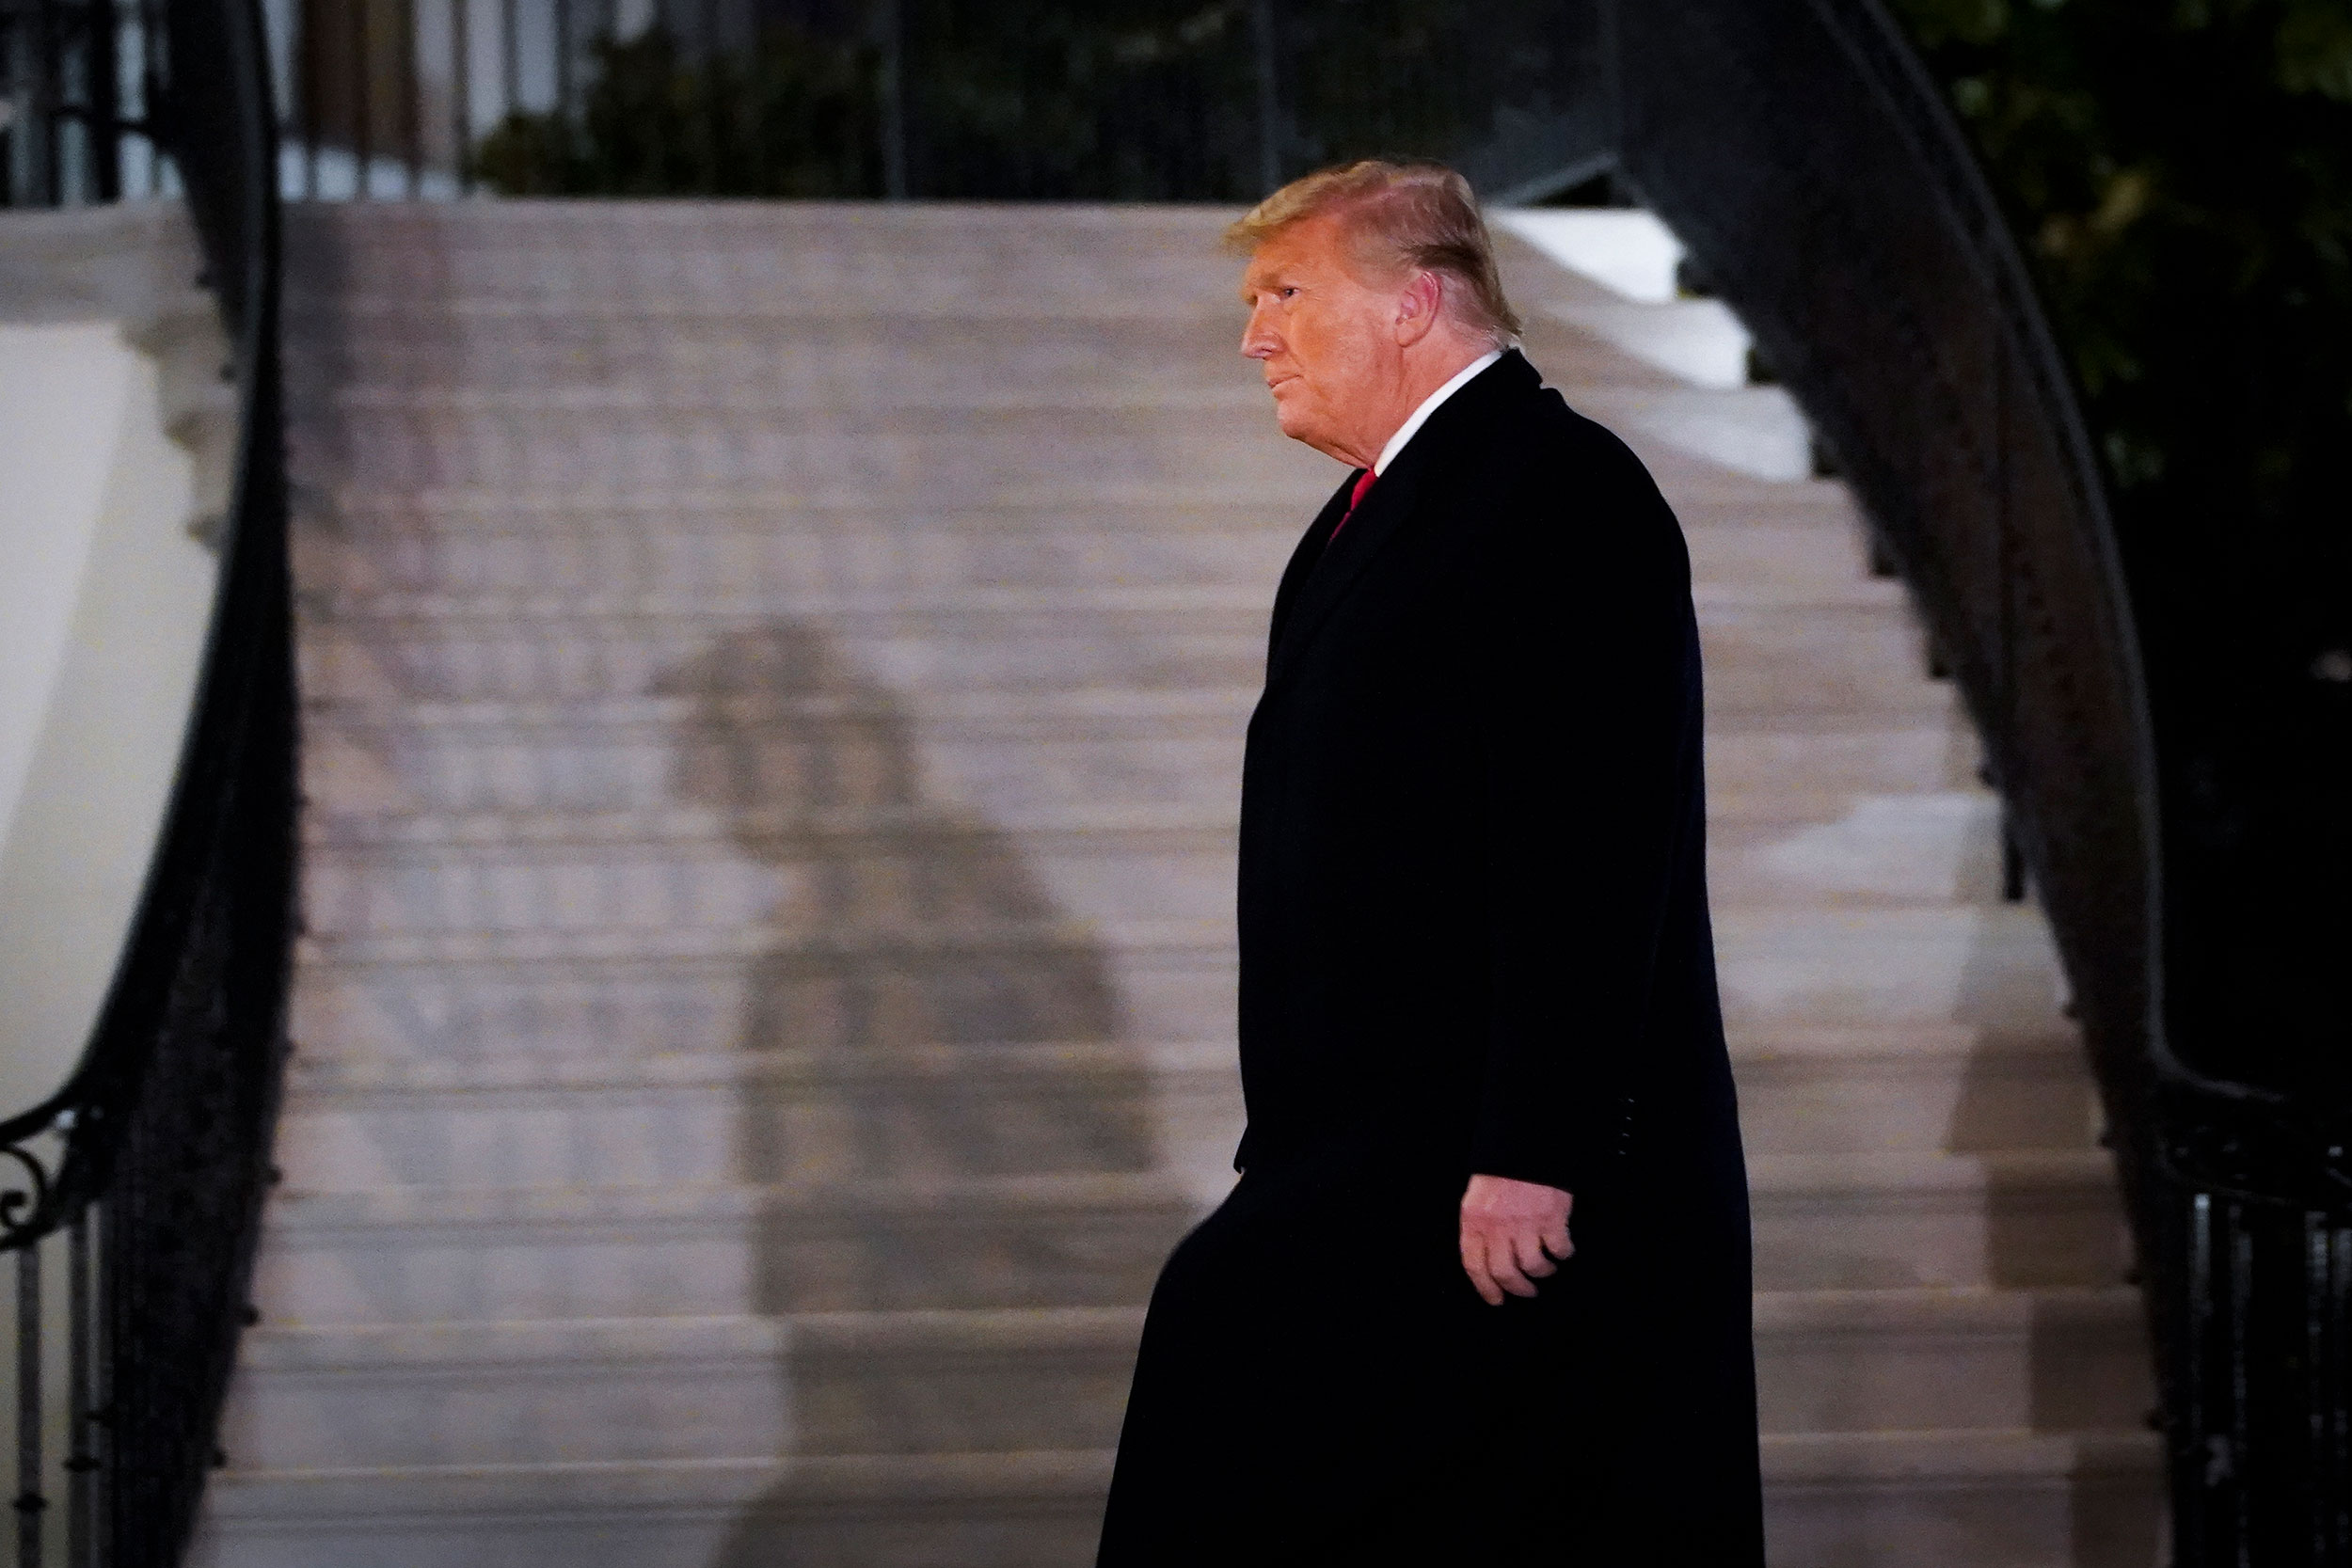 President Trump arrived at the White House on January 12.